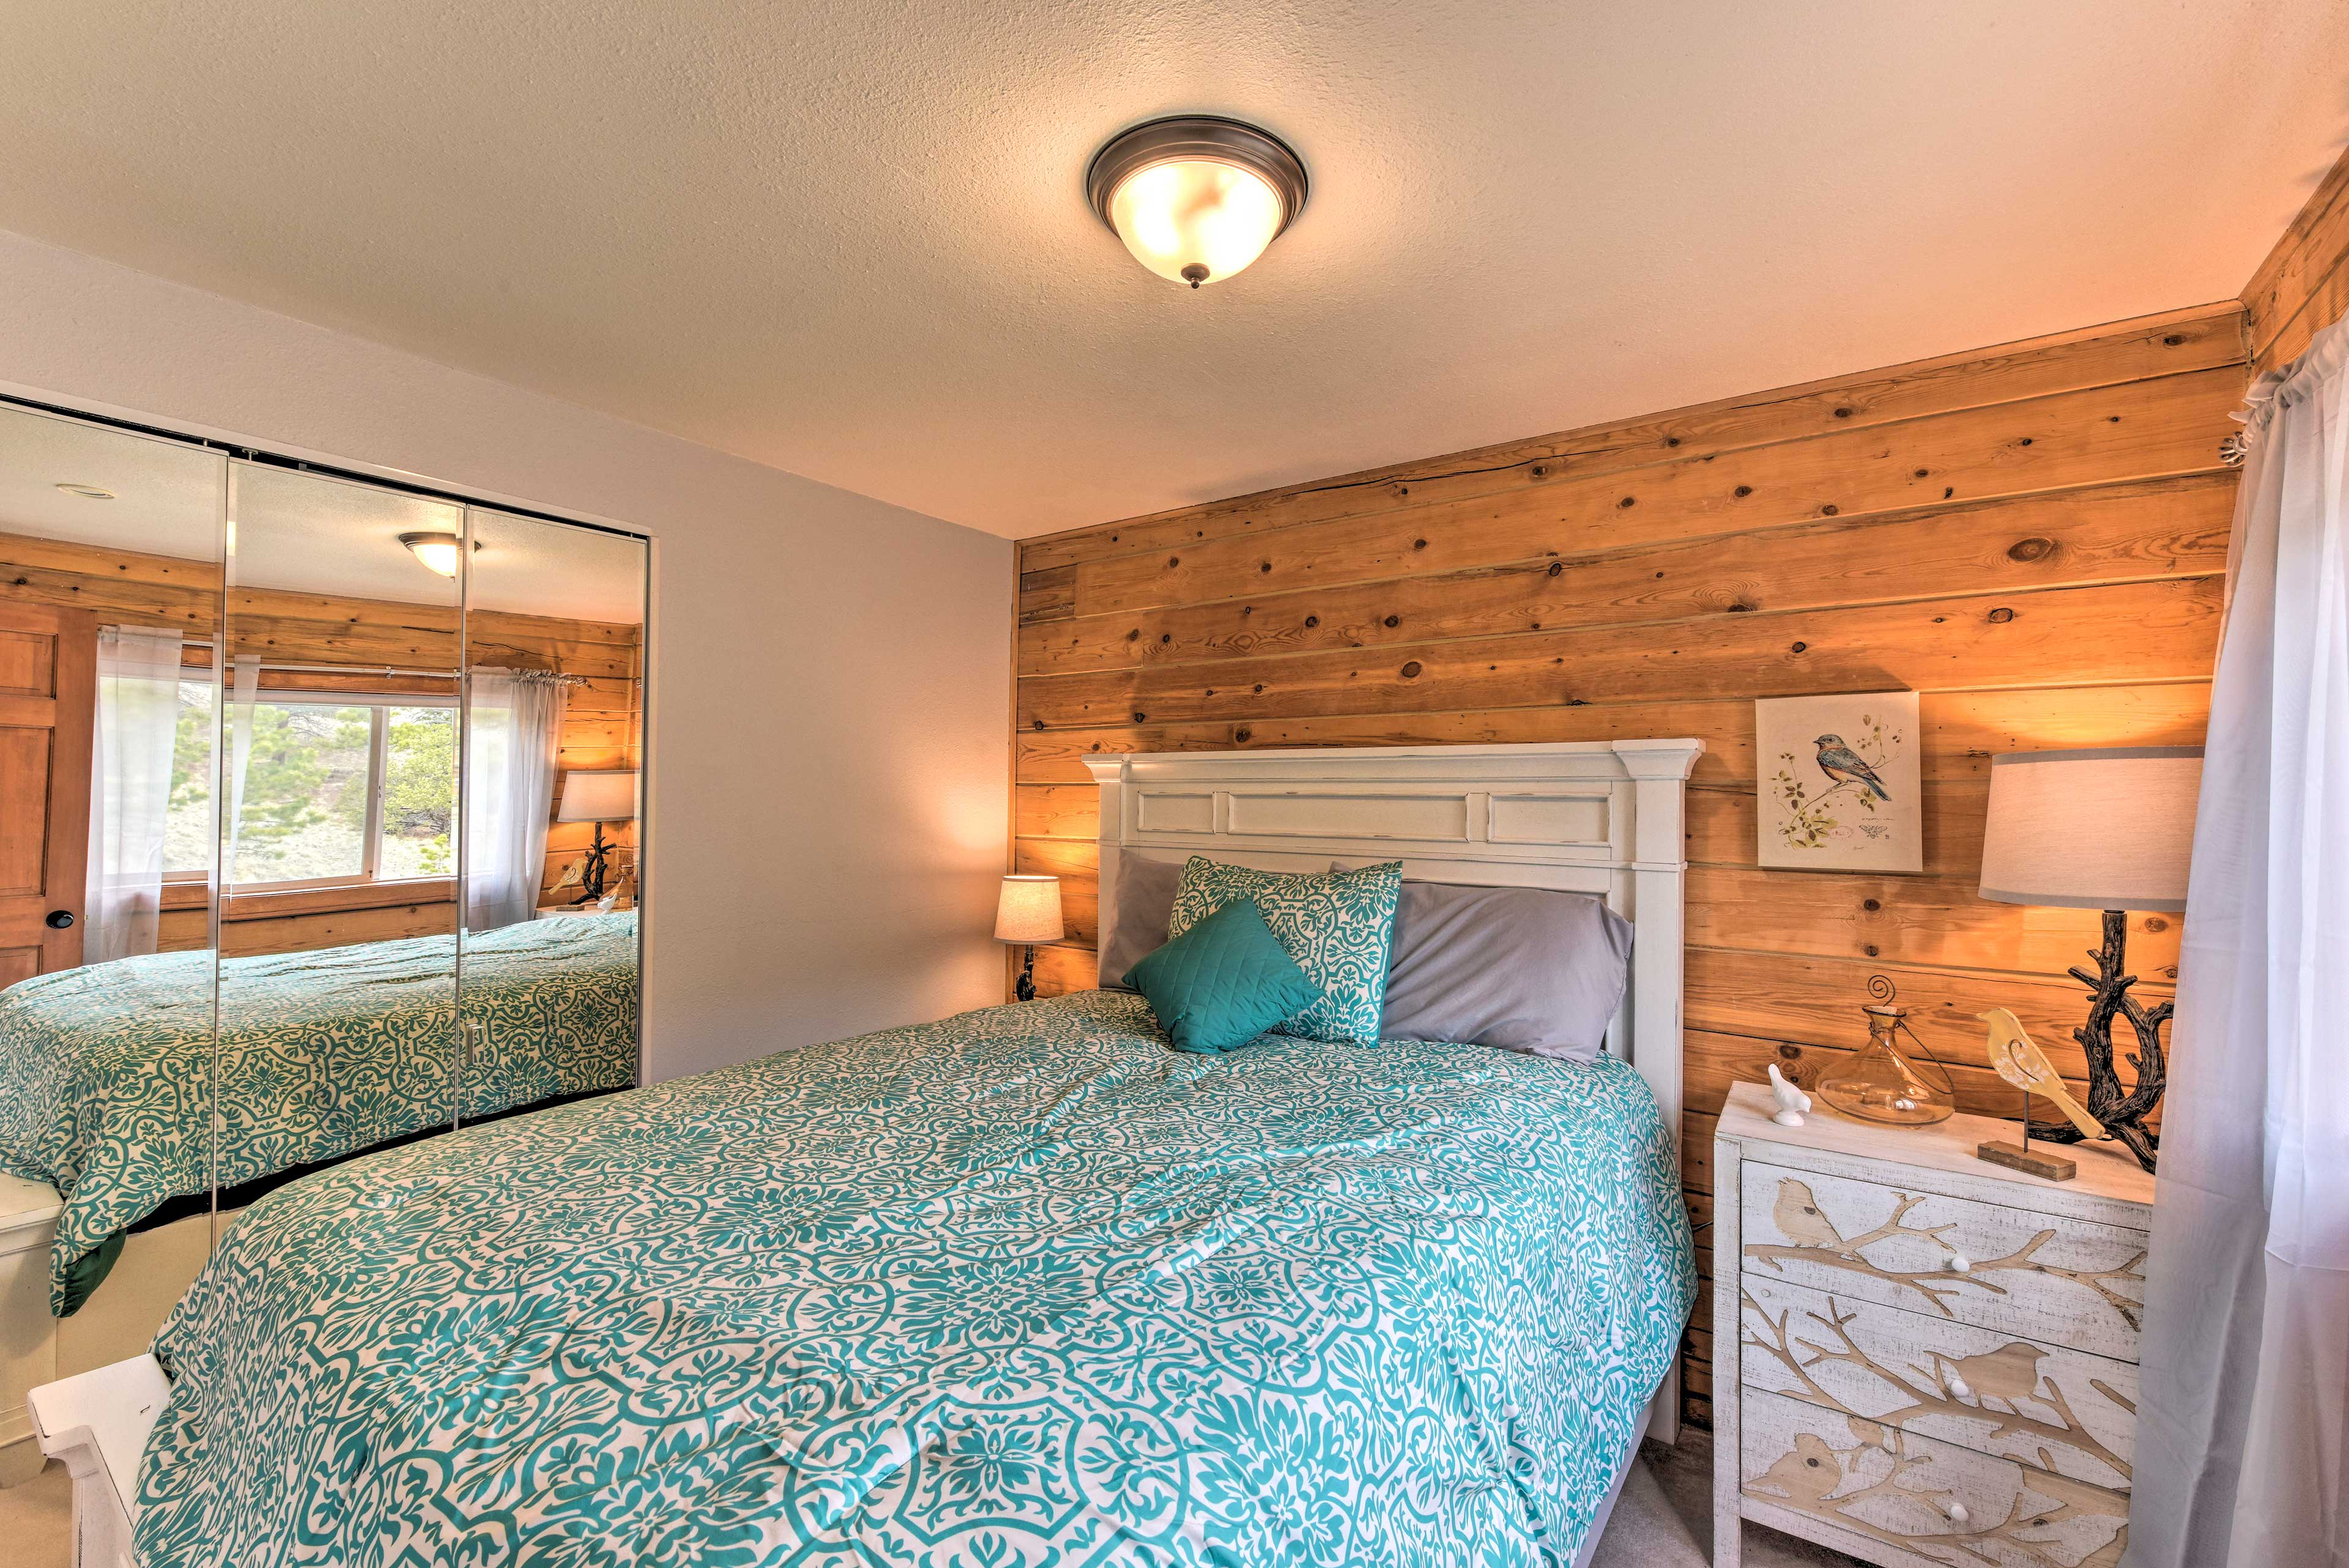 The second bedroom also features a queen bed.